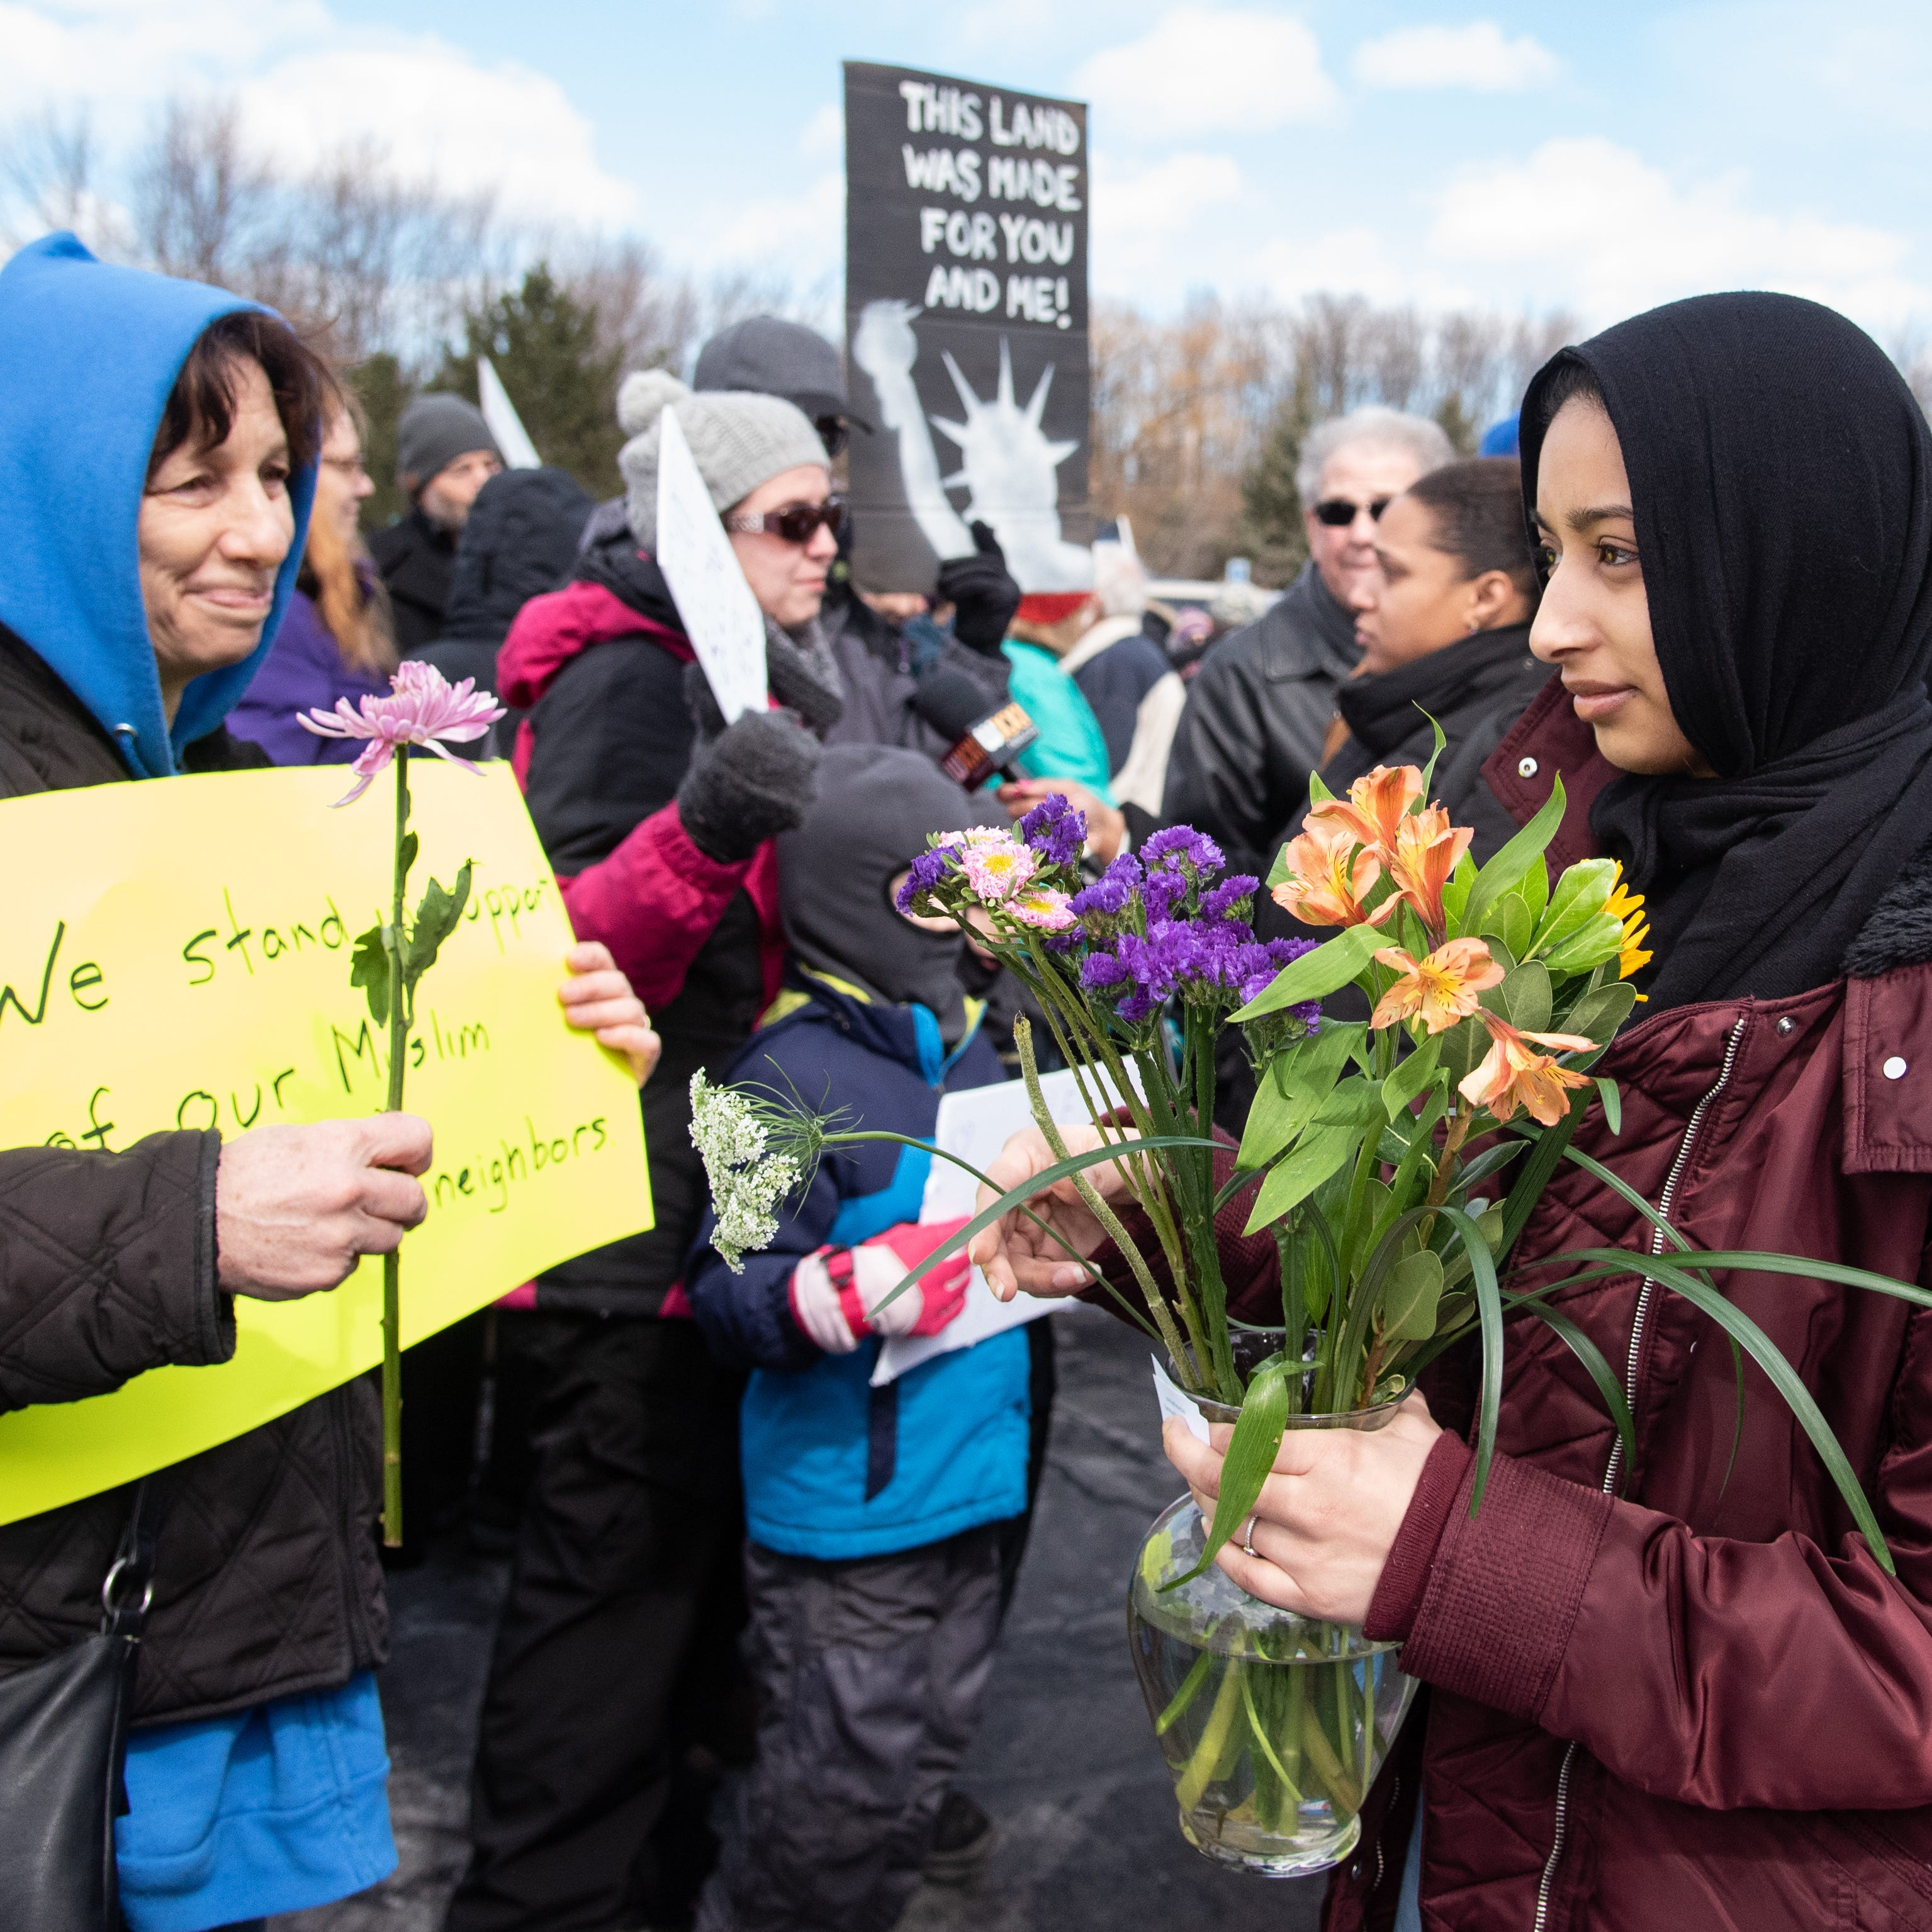 Rochester's faith communities gather by the hundreds to show support for area Muslims